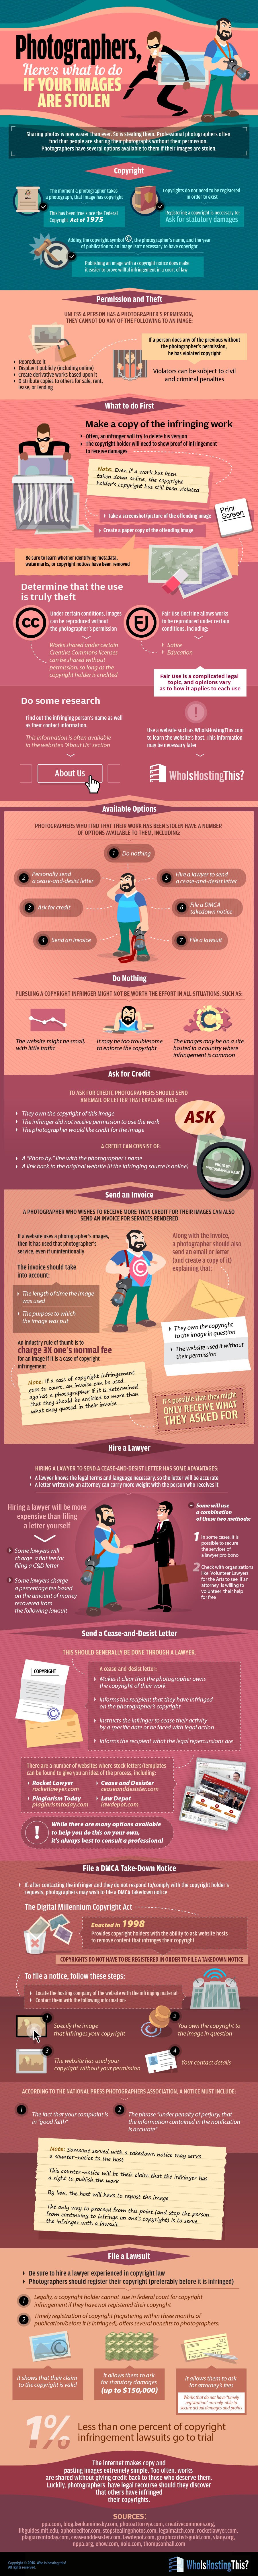 What to Do If Your Photographs Are Stolen - #Infographic